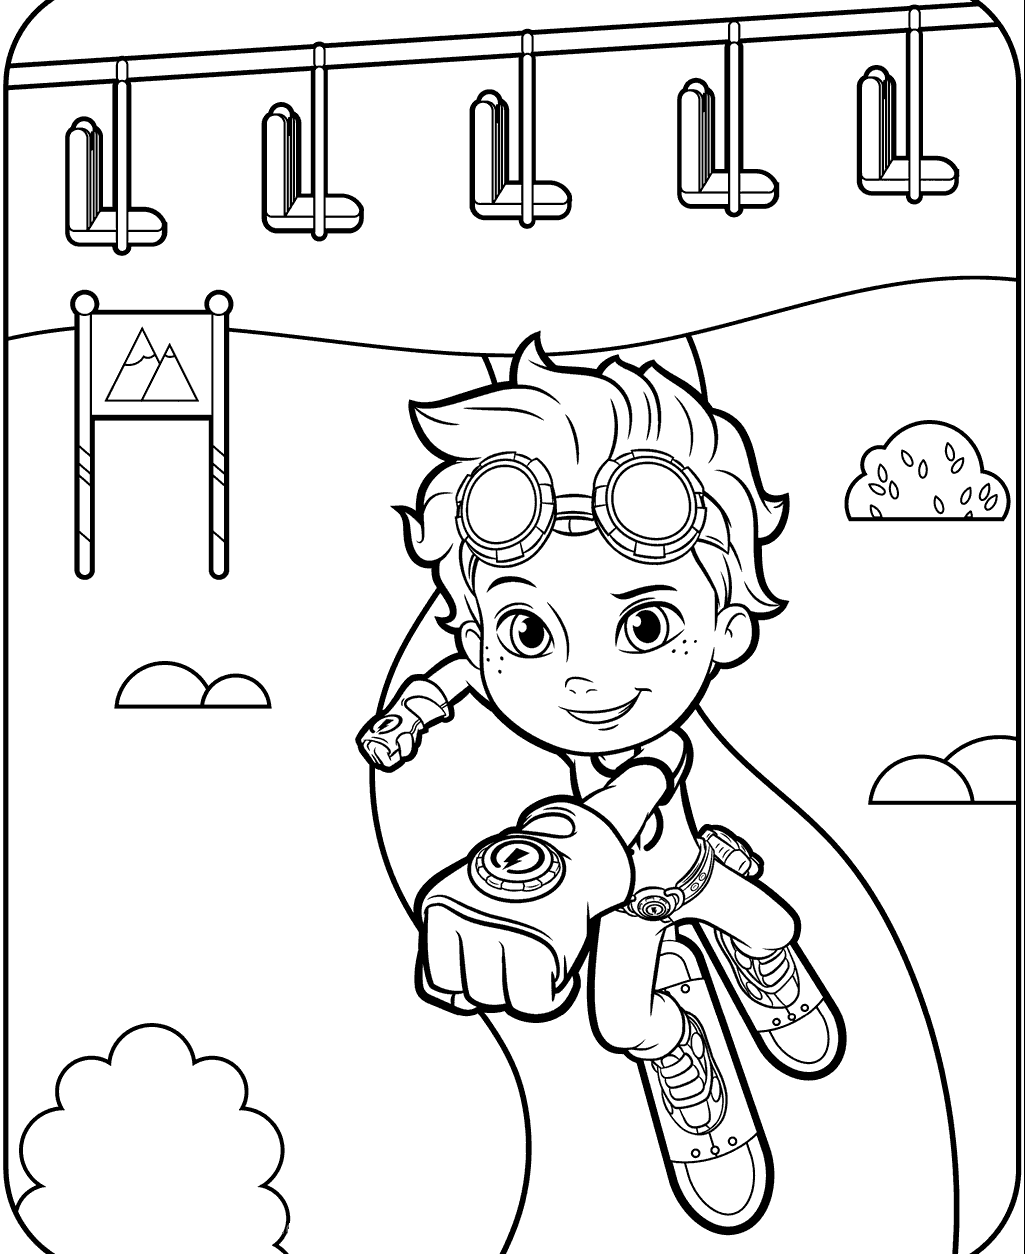 492834039824 Rusty Rivets Coloring Pages for Kids e1543891058904